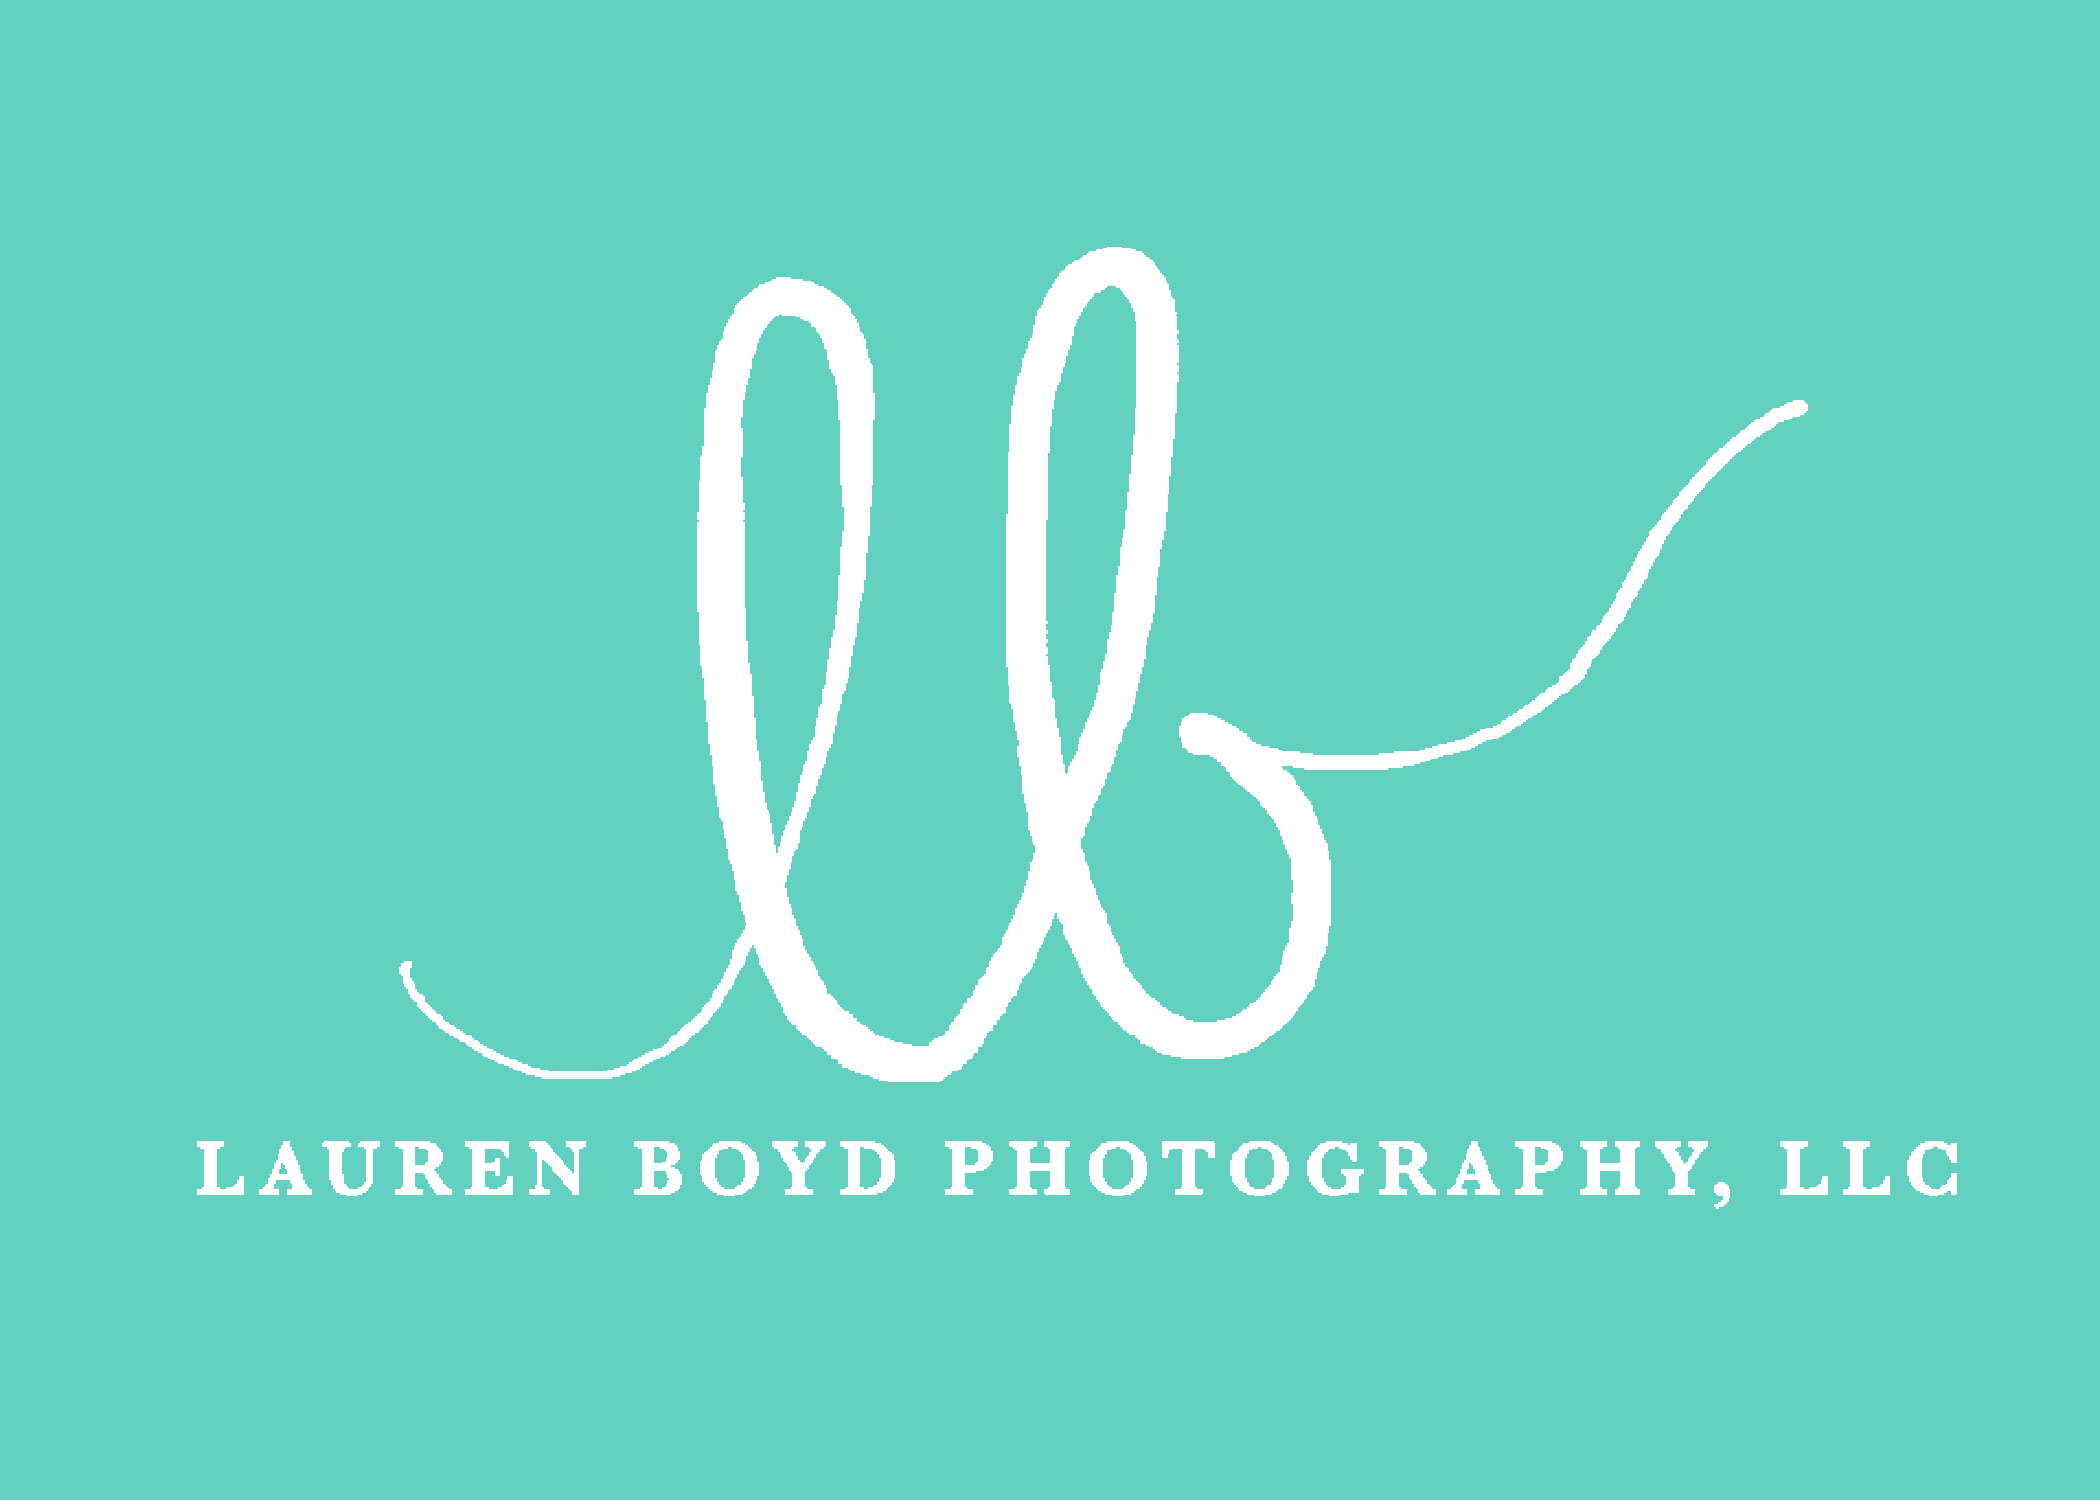 Lauren Boyd Photography, LLC